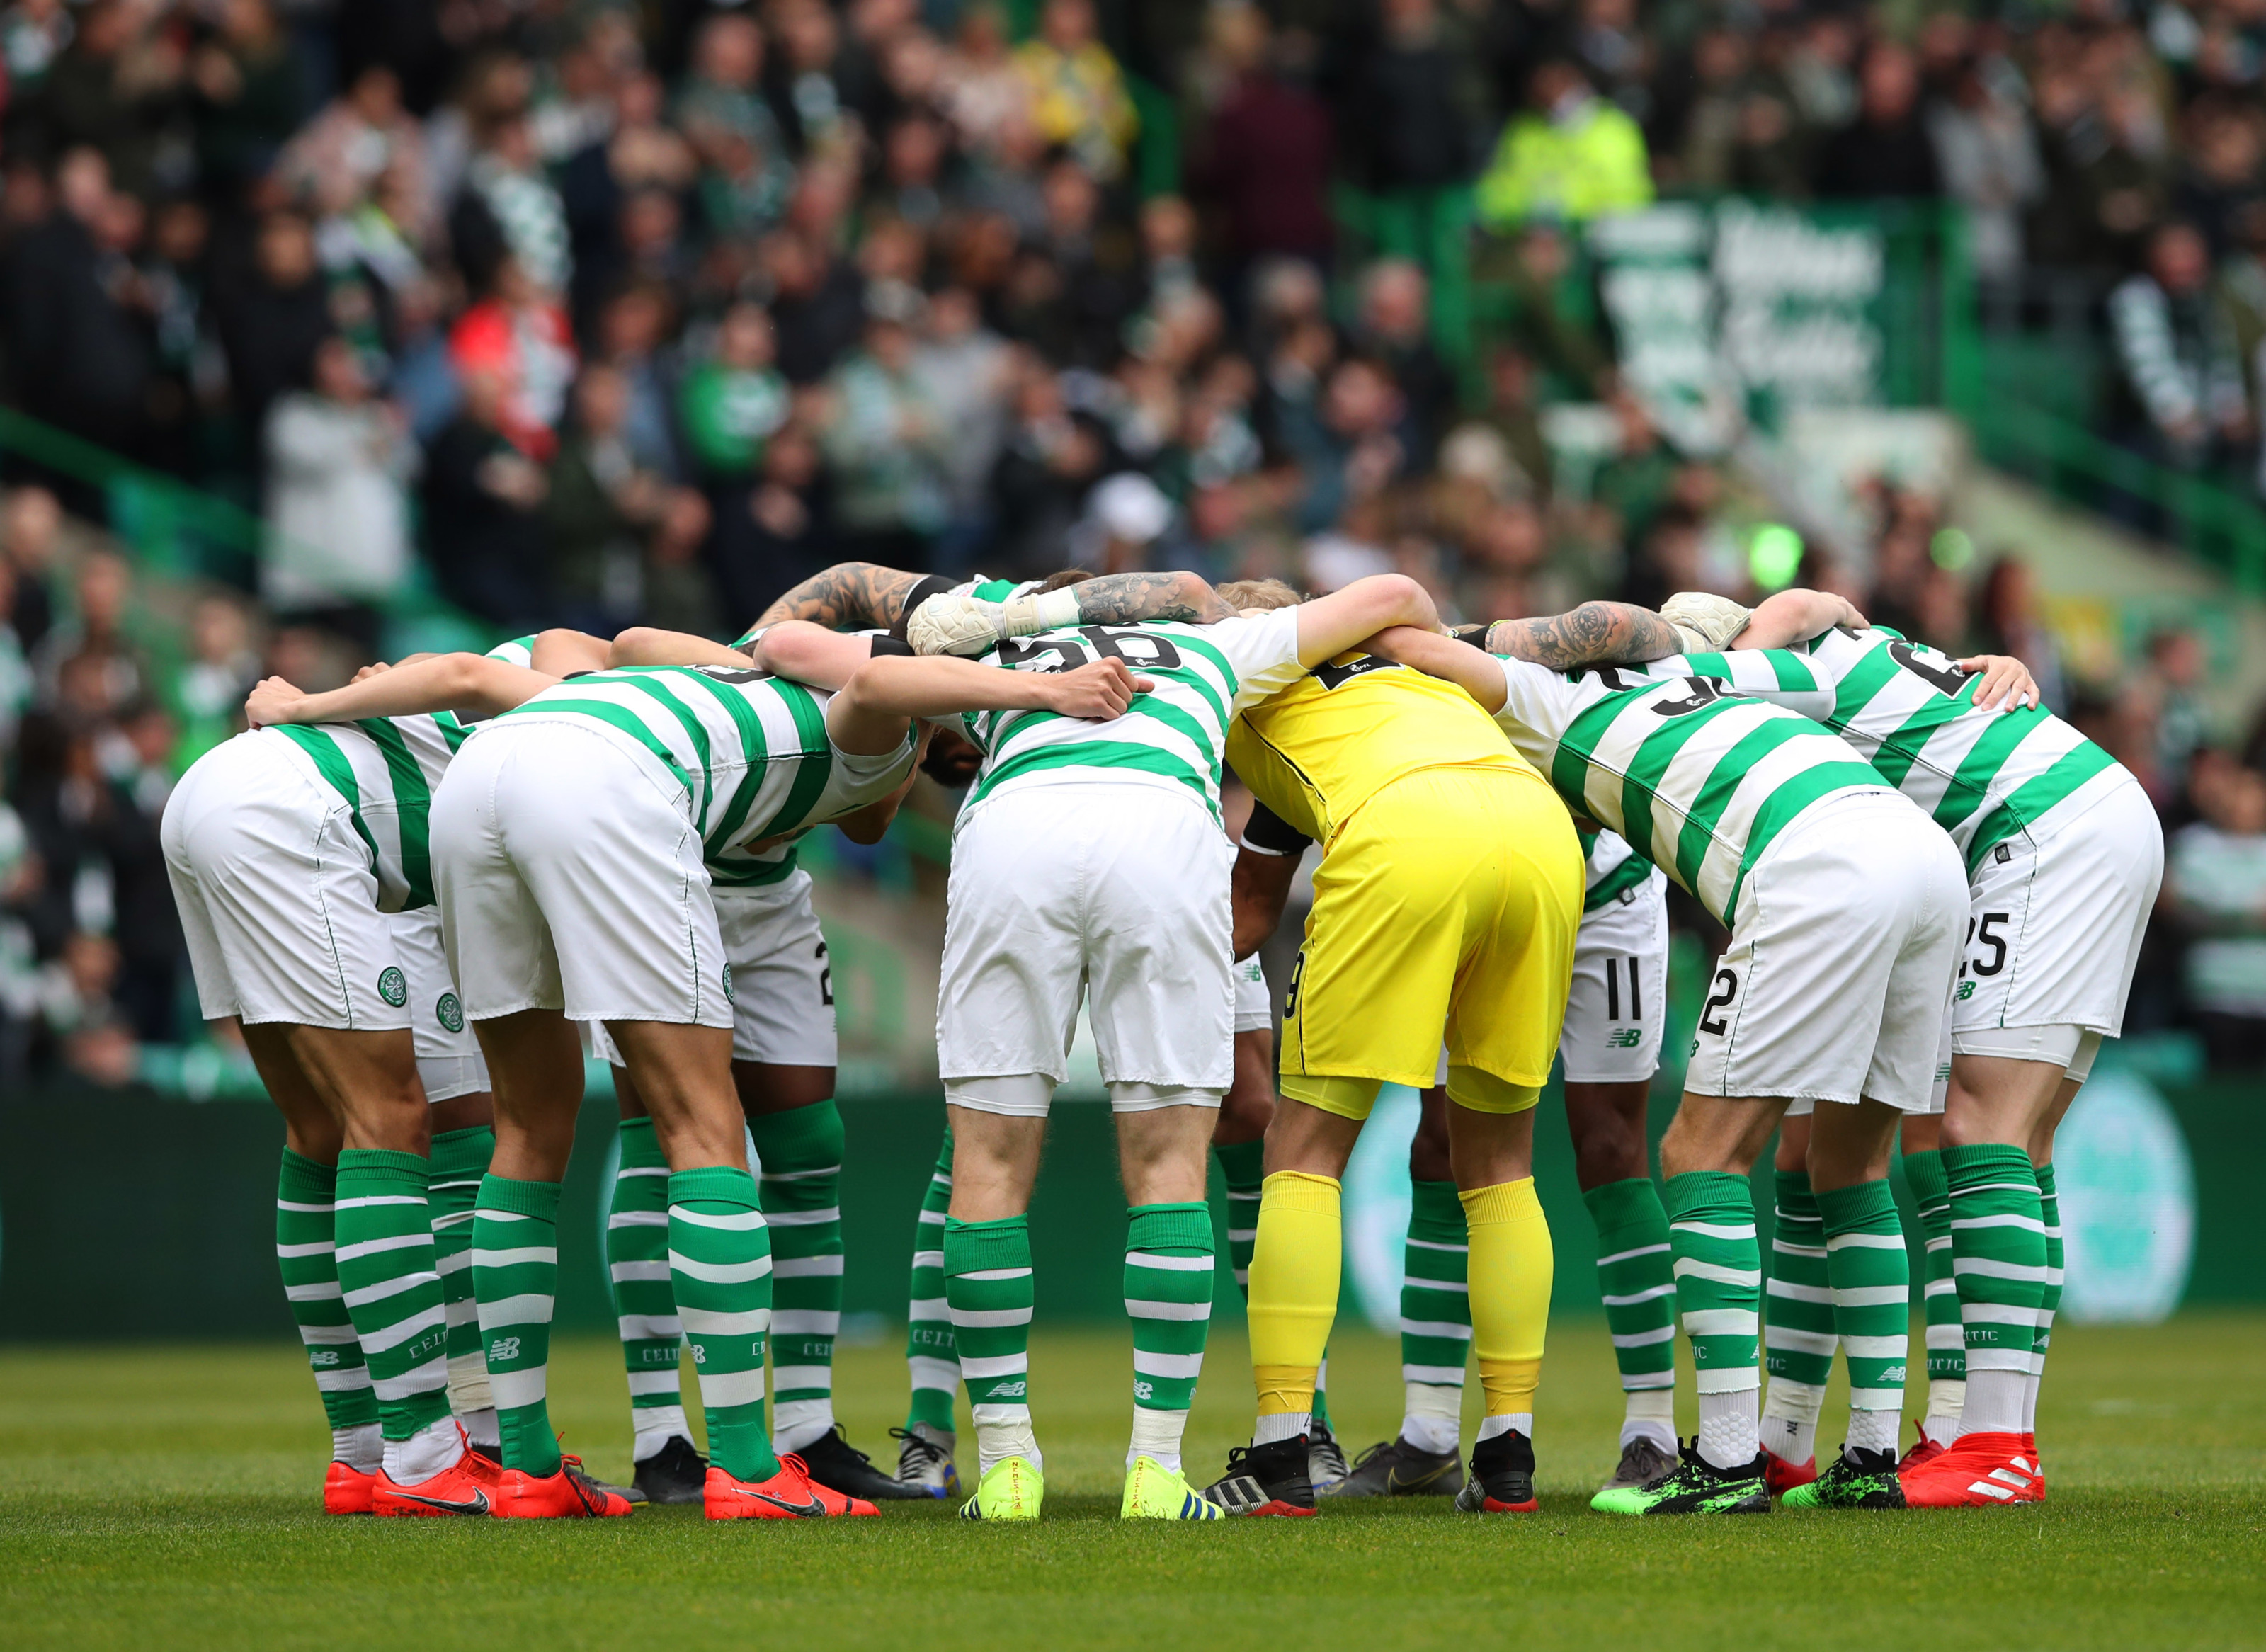 Hard thoughts while daydreaming about the Bhoys at Celtic Park